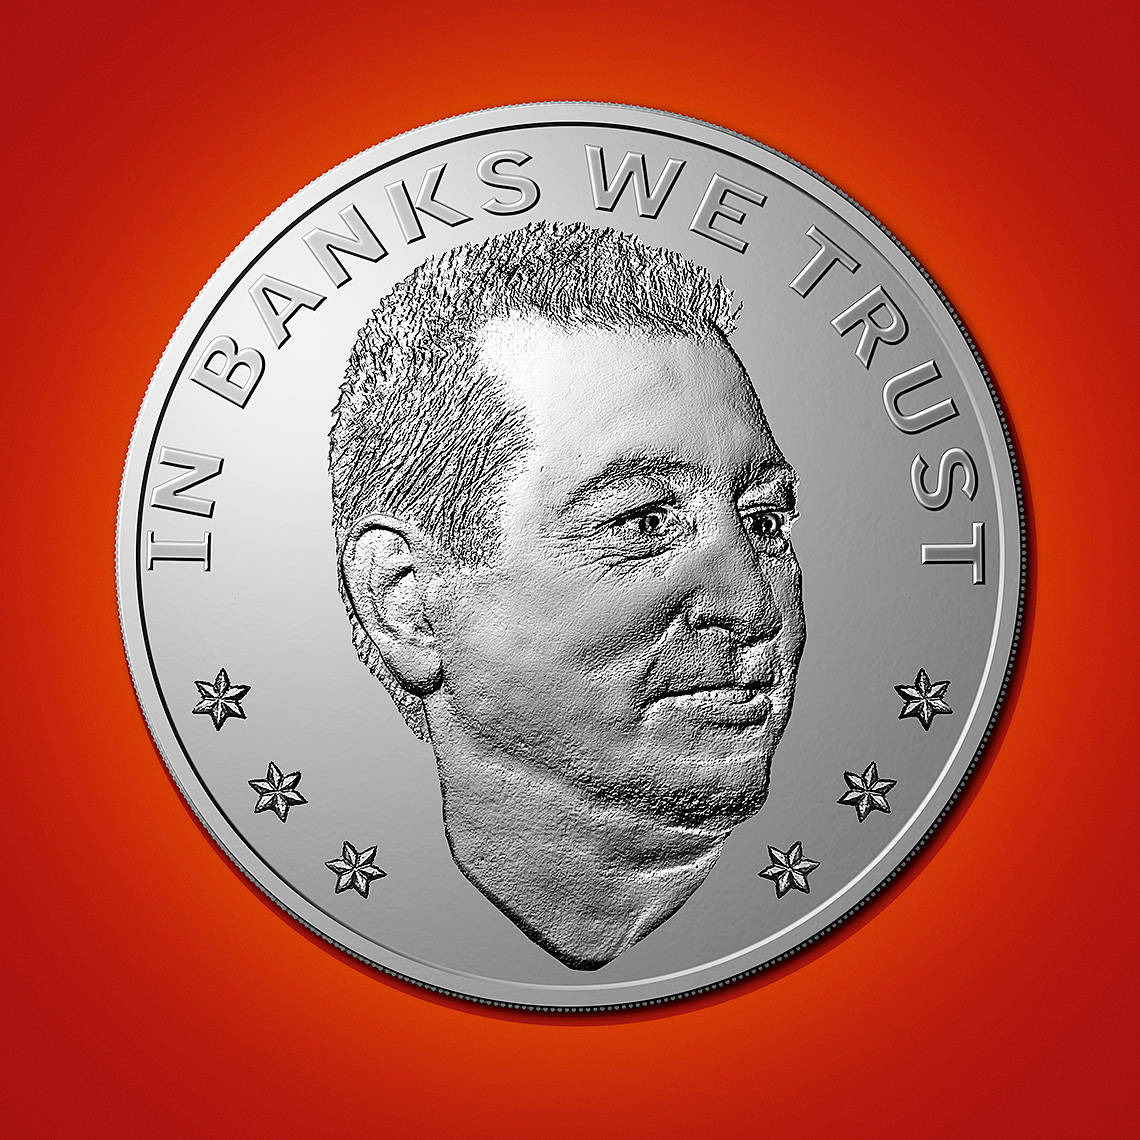 Joseph Otting Comptroller coin illustration by John Kuczala